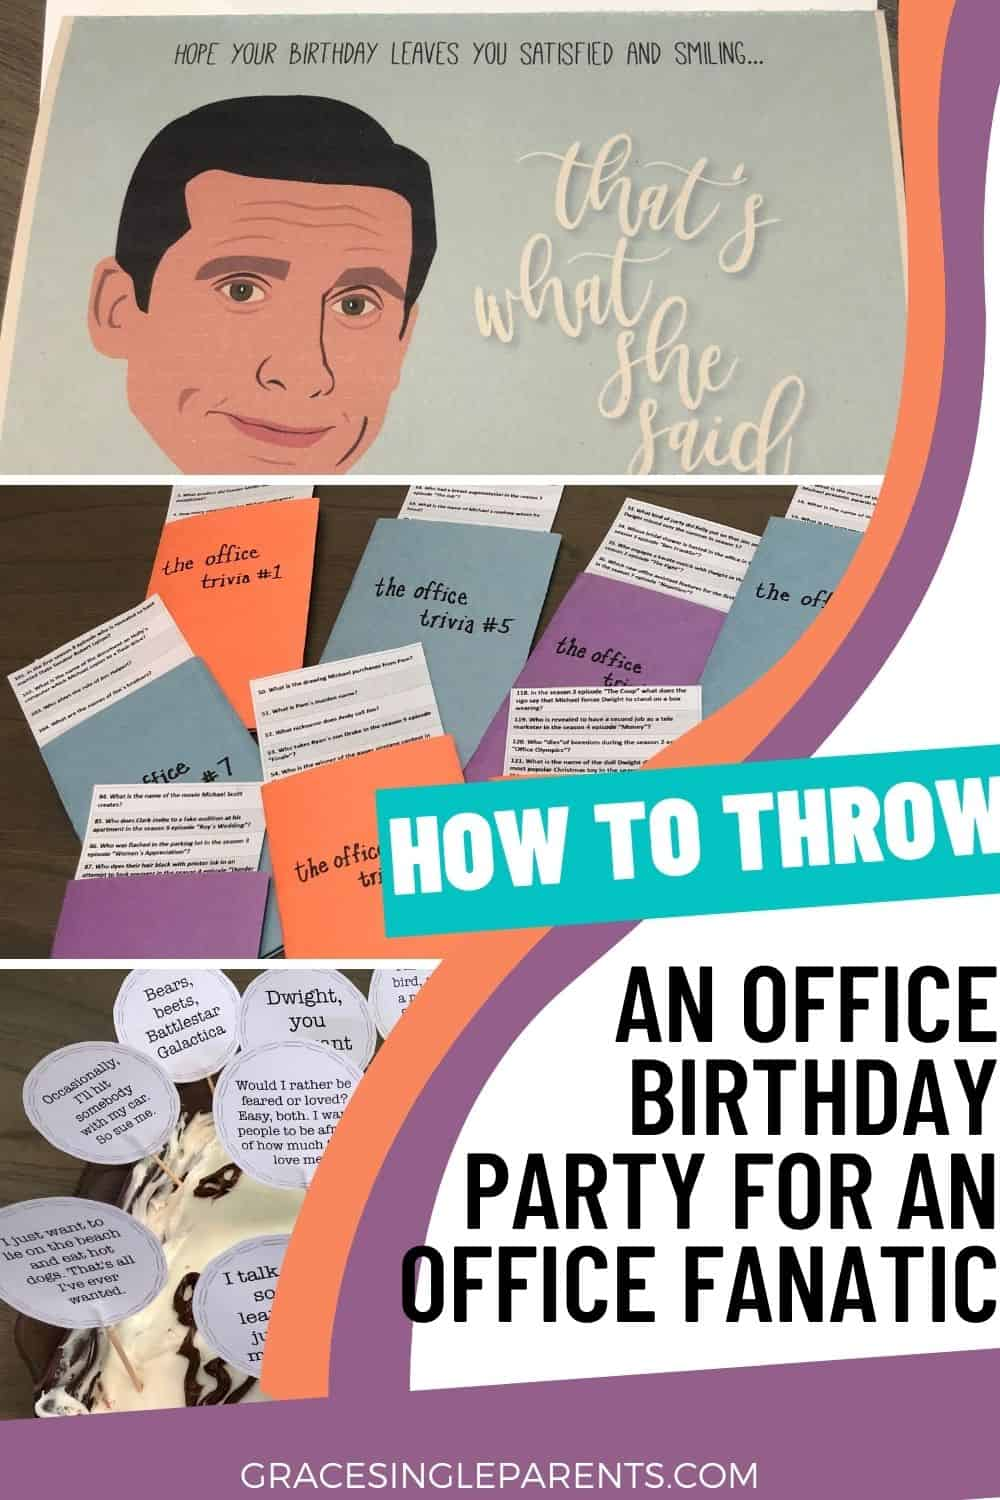 How to Throw An Office Birthday for a Teenager (or Any Office Fanatic)